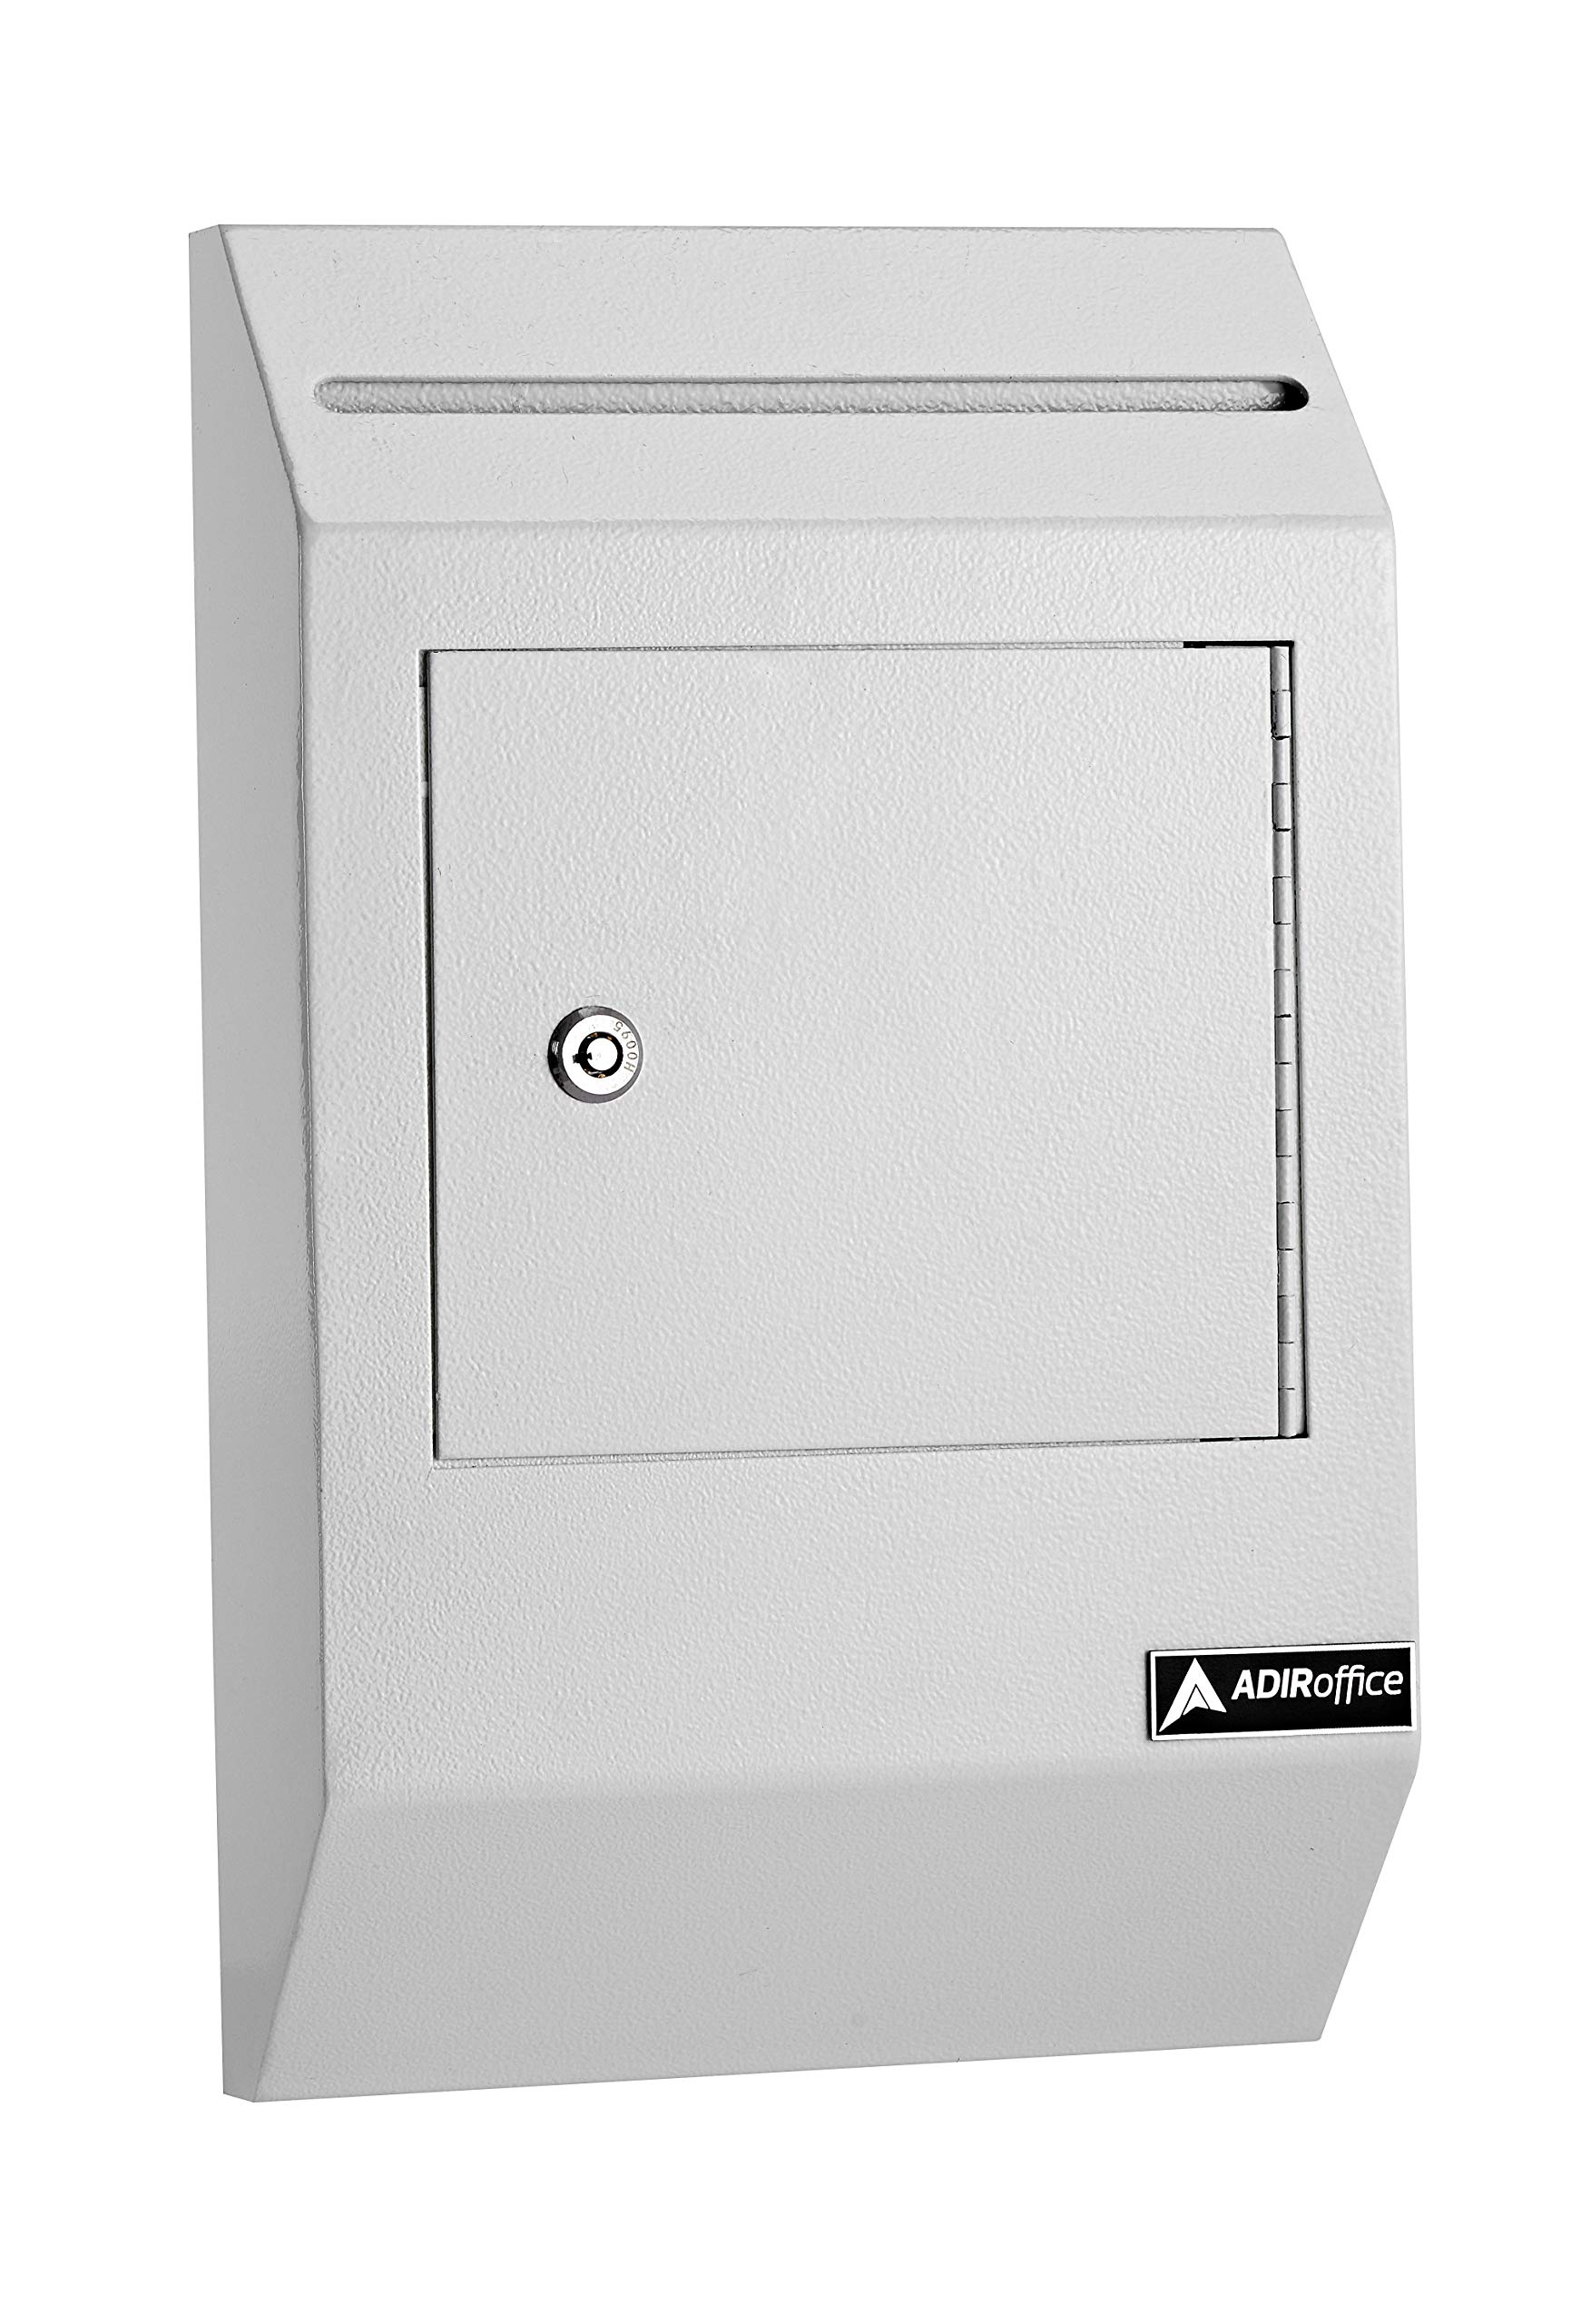 AdirOffice Drop Box - Heavy Duty Secured Storage with Lock - for Commercial Home Office or Business Use (White)